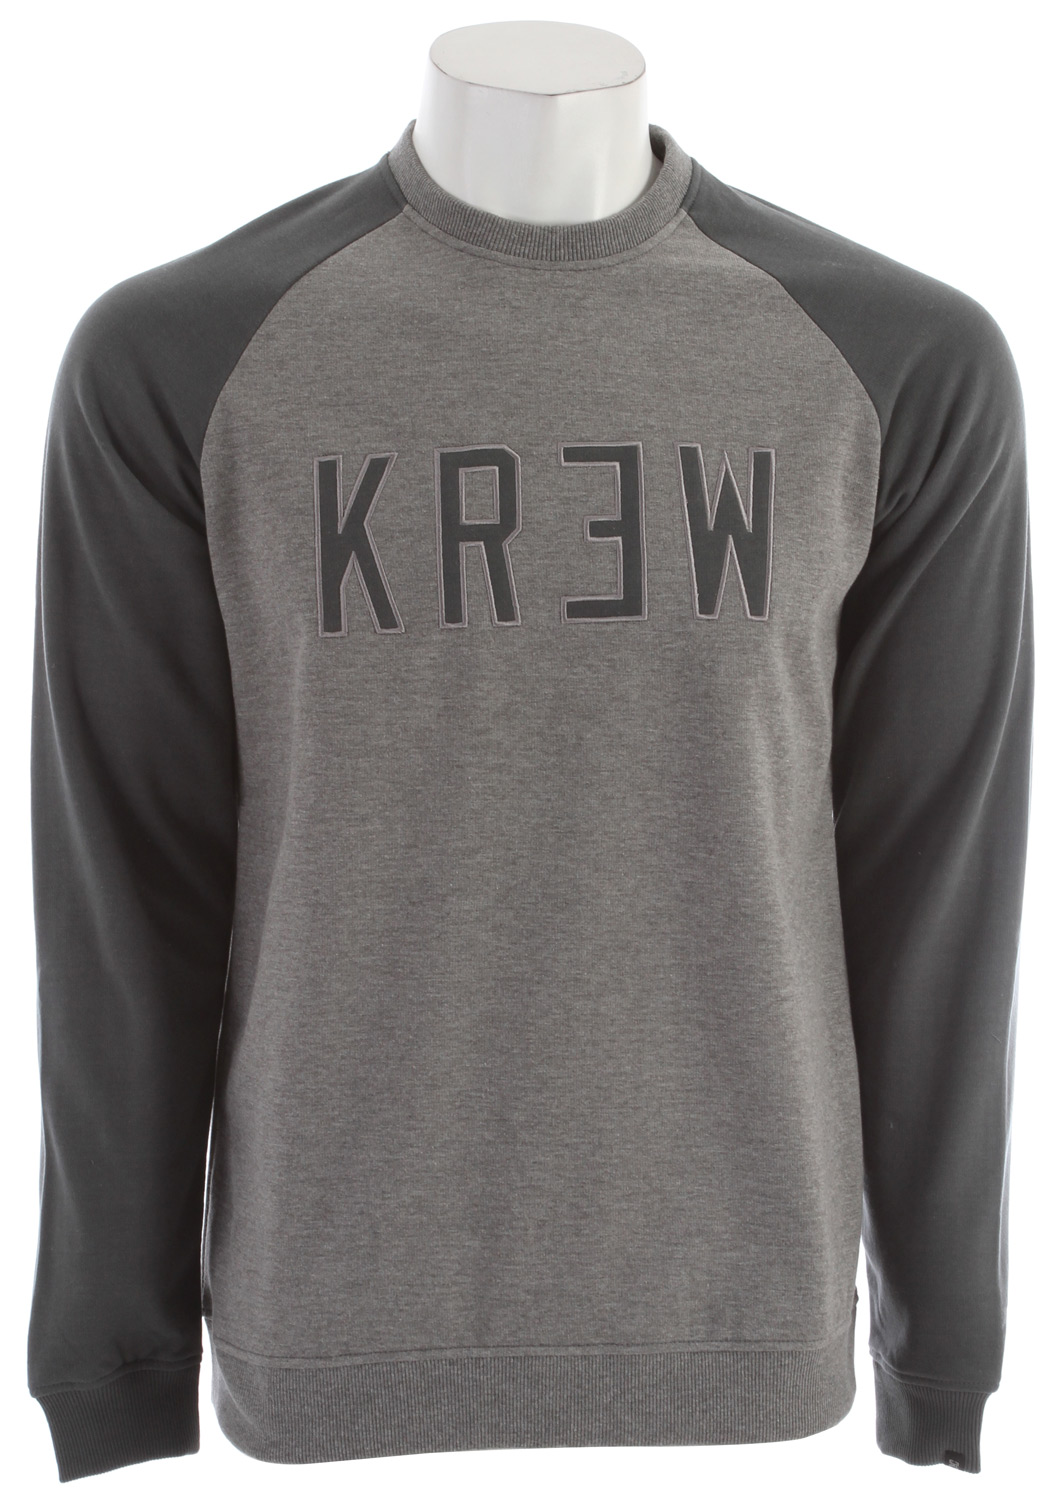 Stop having to call it quits when the temperature drops a bit. The KR3W Minority Crew Sweatshirt is just the right balance of warmth, style and comfort to make it a must-have for anyone having fun and staying warm. This blended cotton and polyester top is durable enough to handle all the challenges you can throw at it while staying comfortable without restricting your range of motion.Key Features of the KR3W Minority Crew Sweatshirt: 80% cotton 20% poly fleece 220g - $26.95